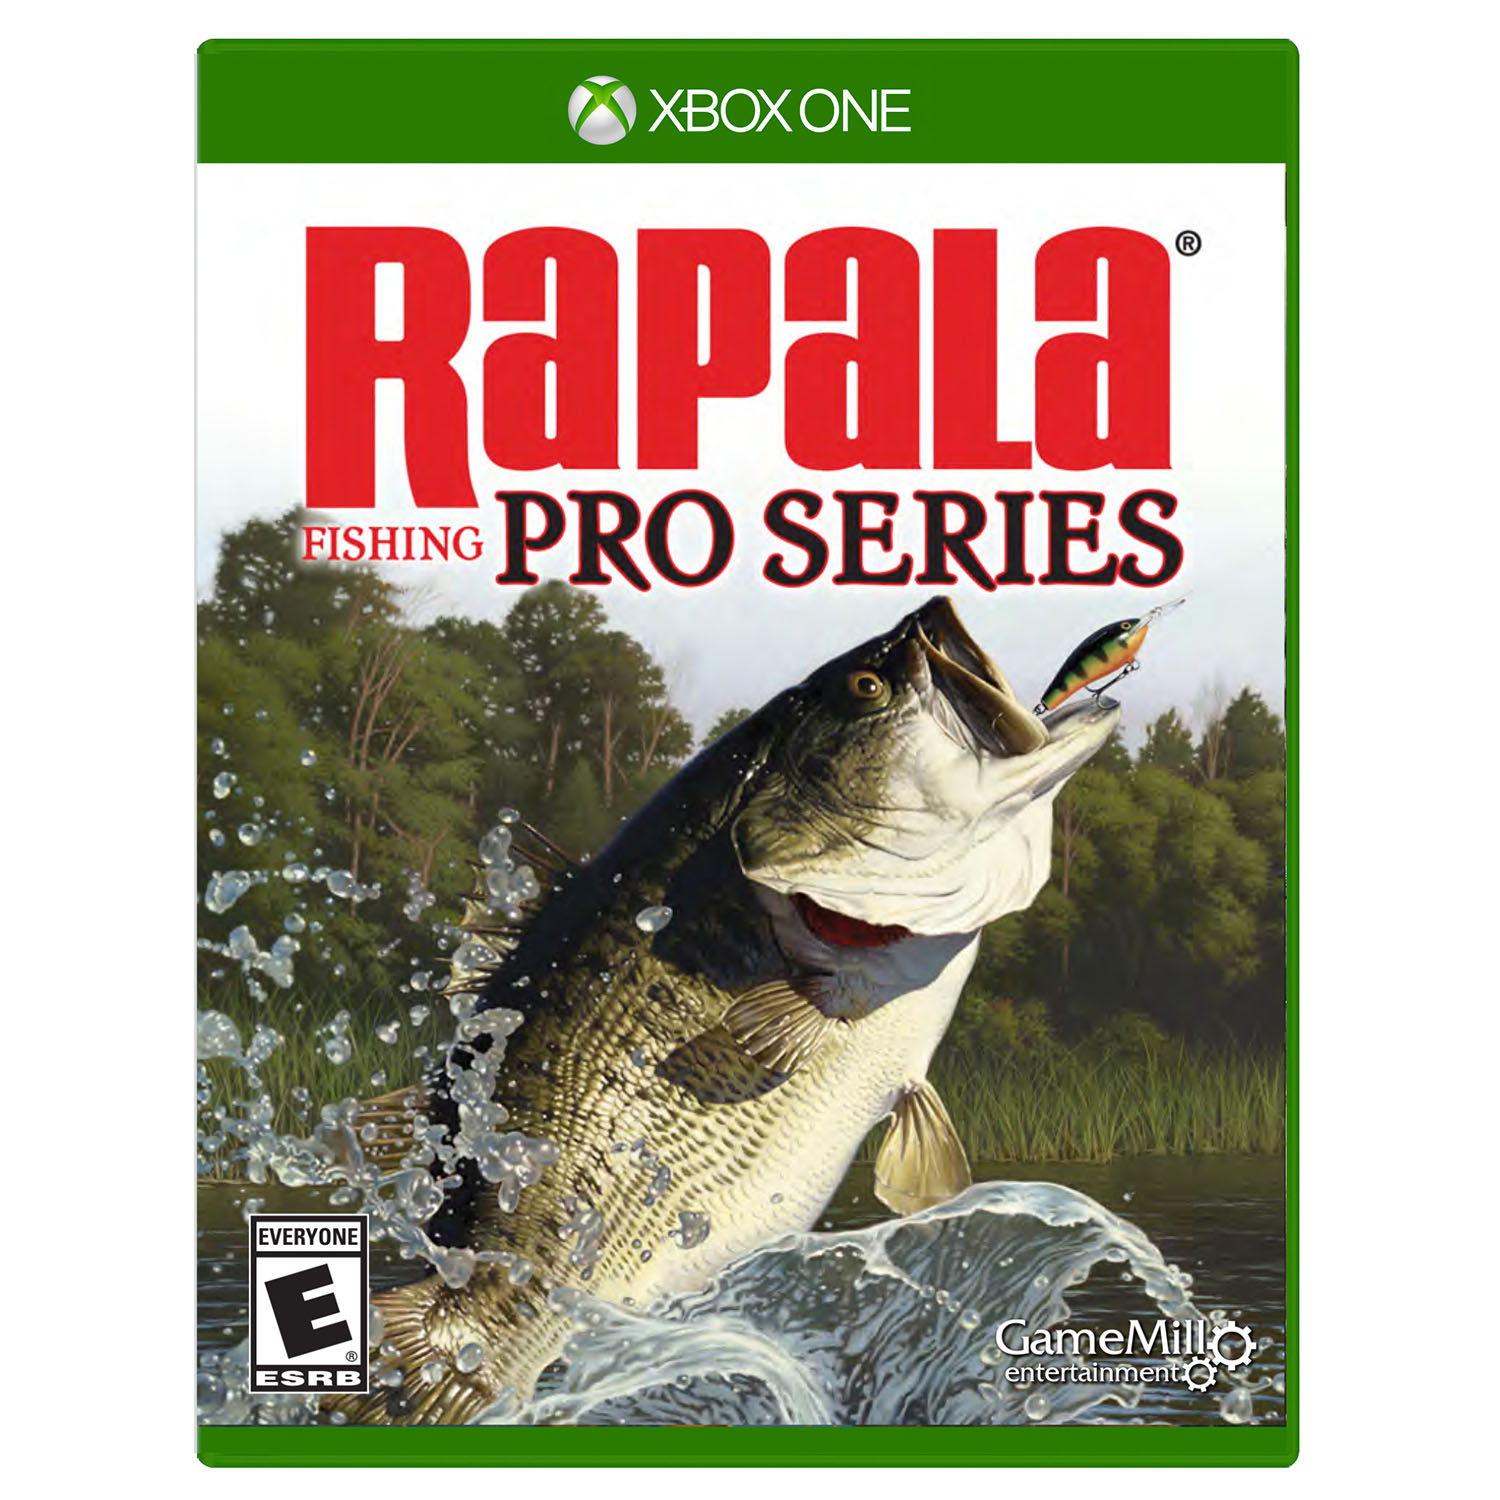 GAMEMILL ENTERTAINMENT Rapala Fishing: Pro Series (Other)